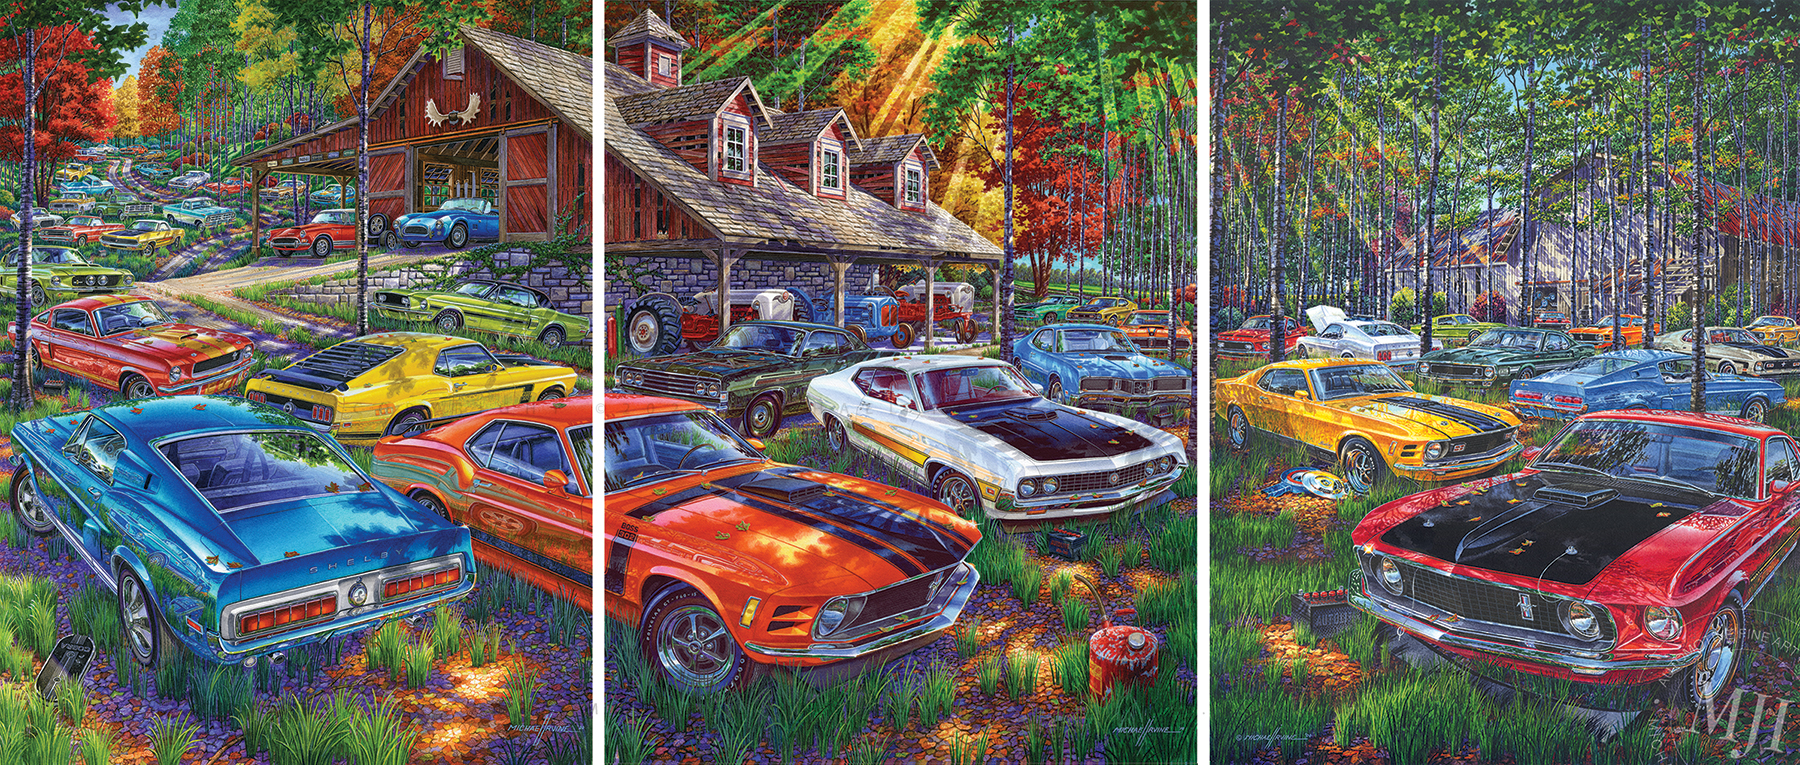 """New Release by """"Reflections of Horsepower"""" Artist Michael Irvine. Three Incredible Paintings. Fourteen Years in the Making. One Ultimate Barn-Find."""